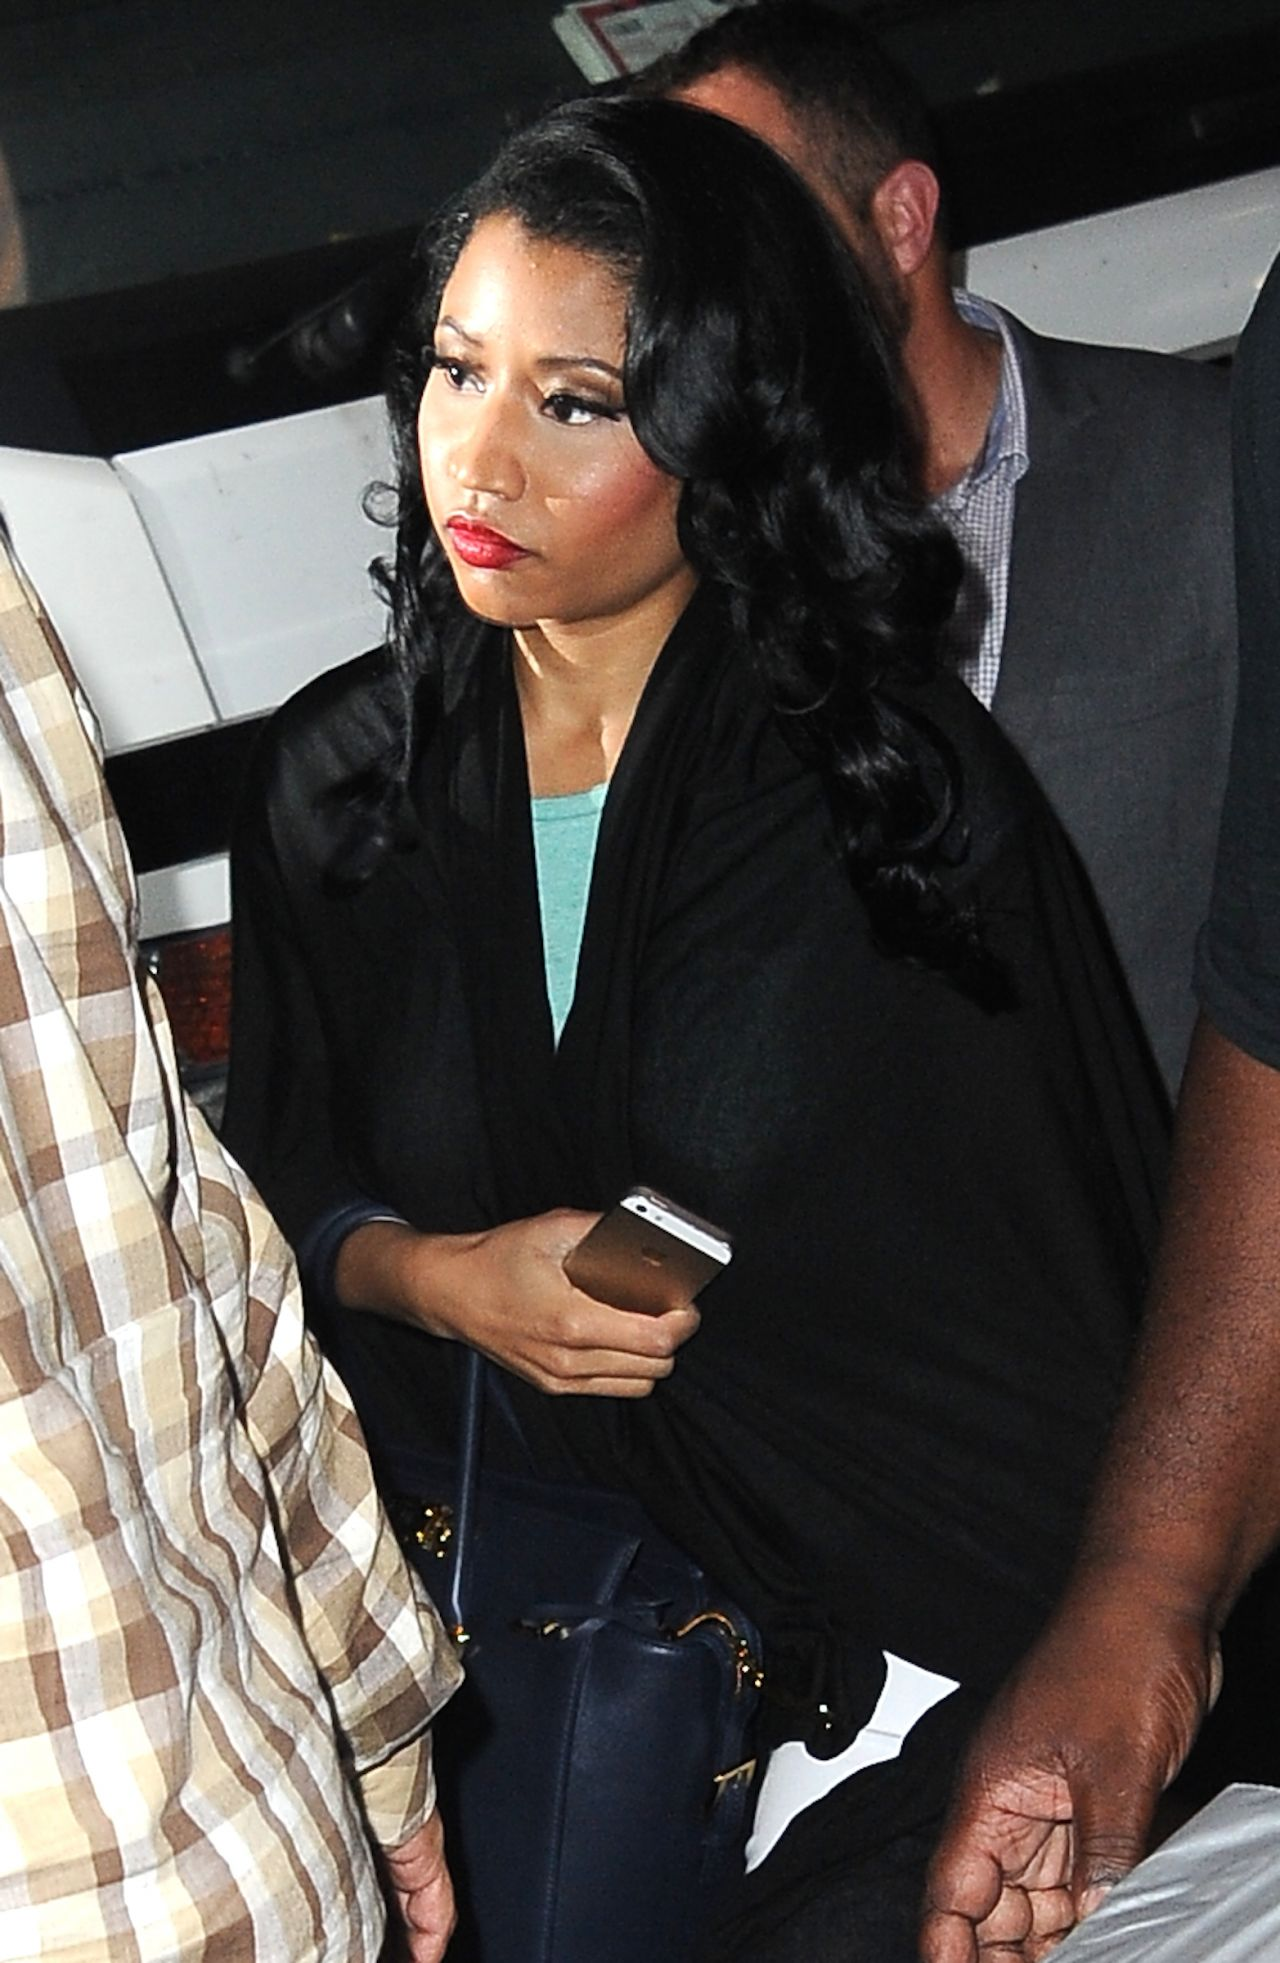 Nicki Minaj Casual Style - Arriving at a Photoshoot in NYC - September 2014